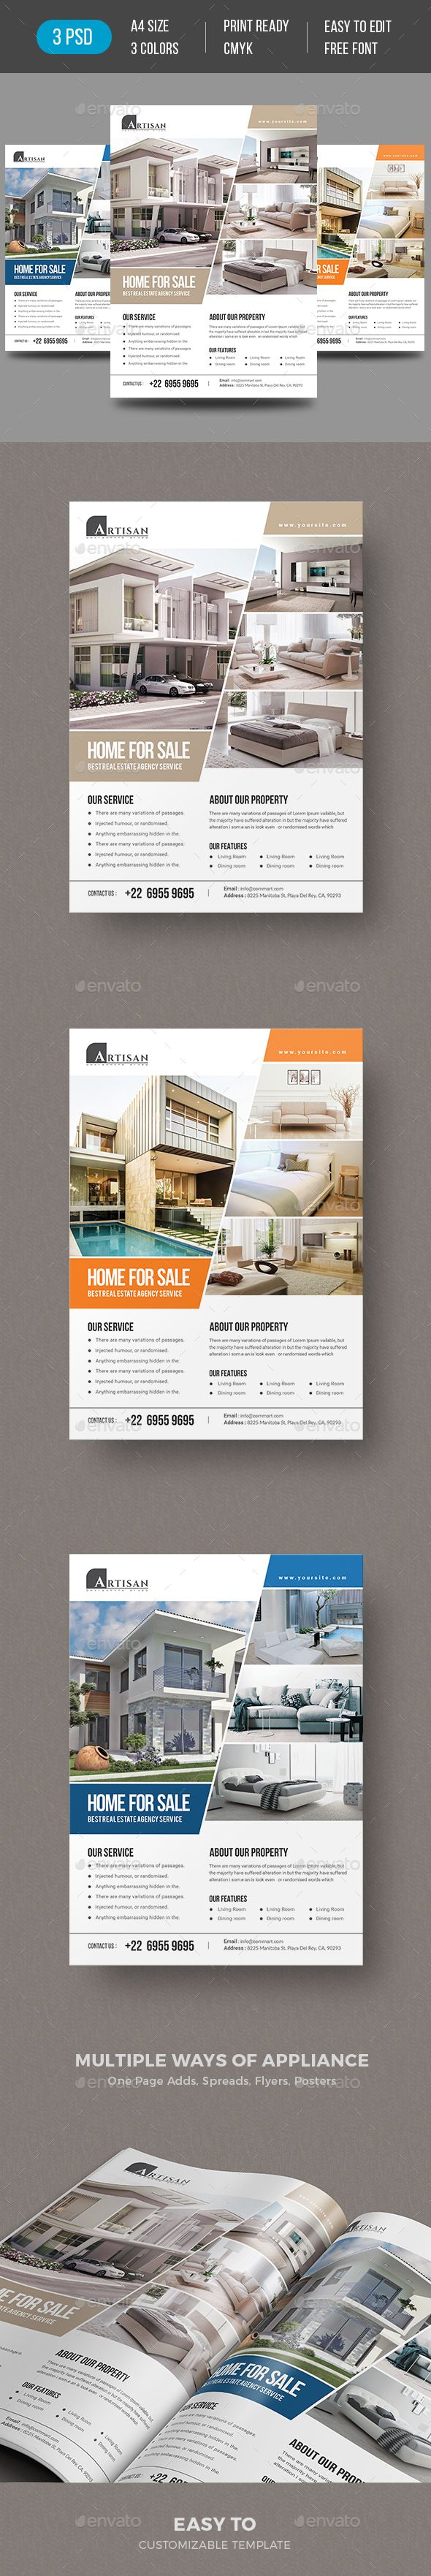 Real Estate Flyer #PSD Template Design suitable for open house events too. Download https://graphicriver.net/item/real-estate-flyer/19299308?ref=themedevisers